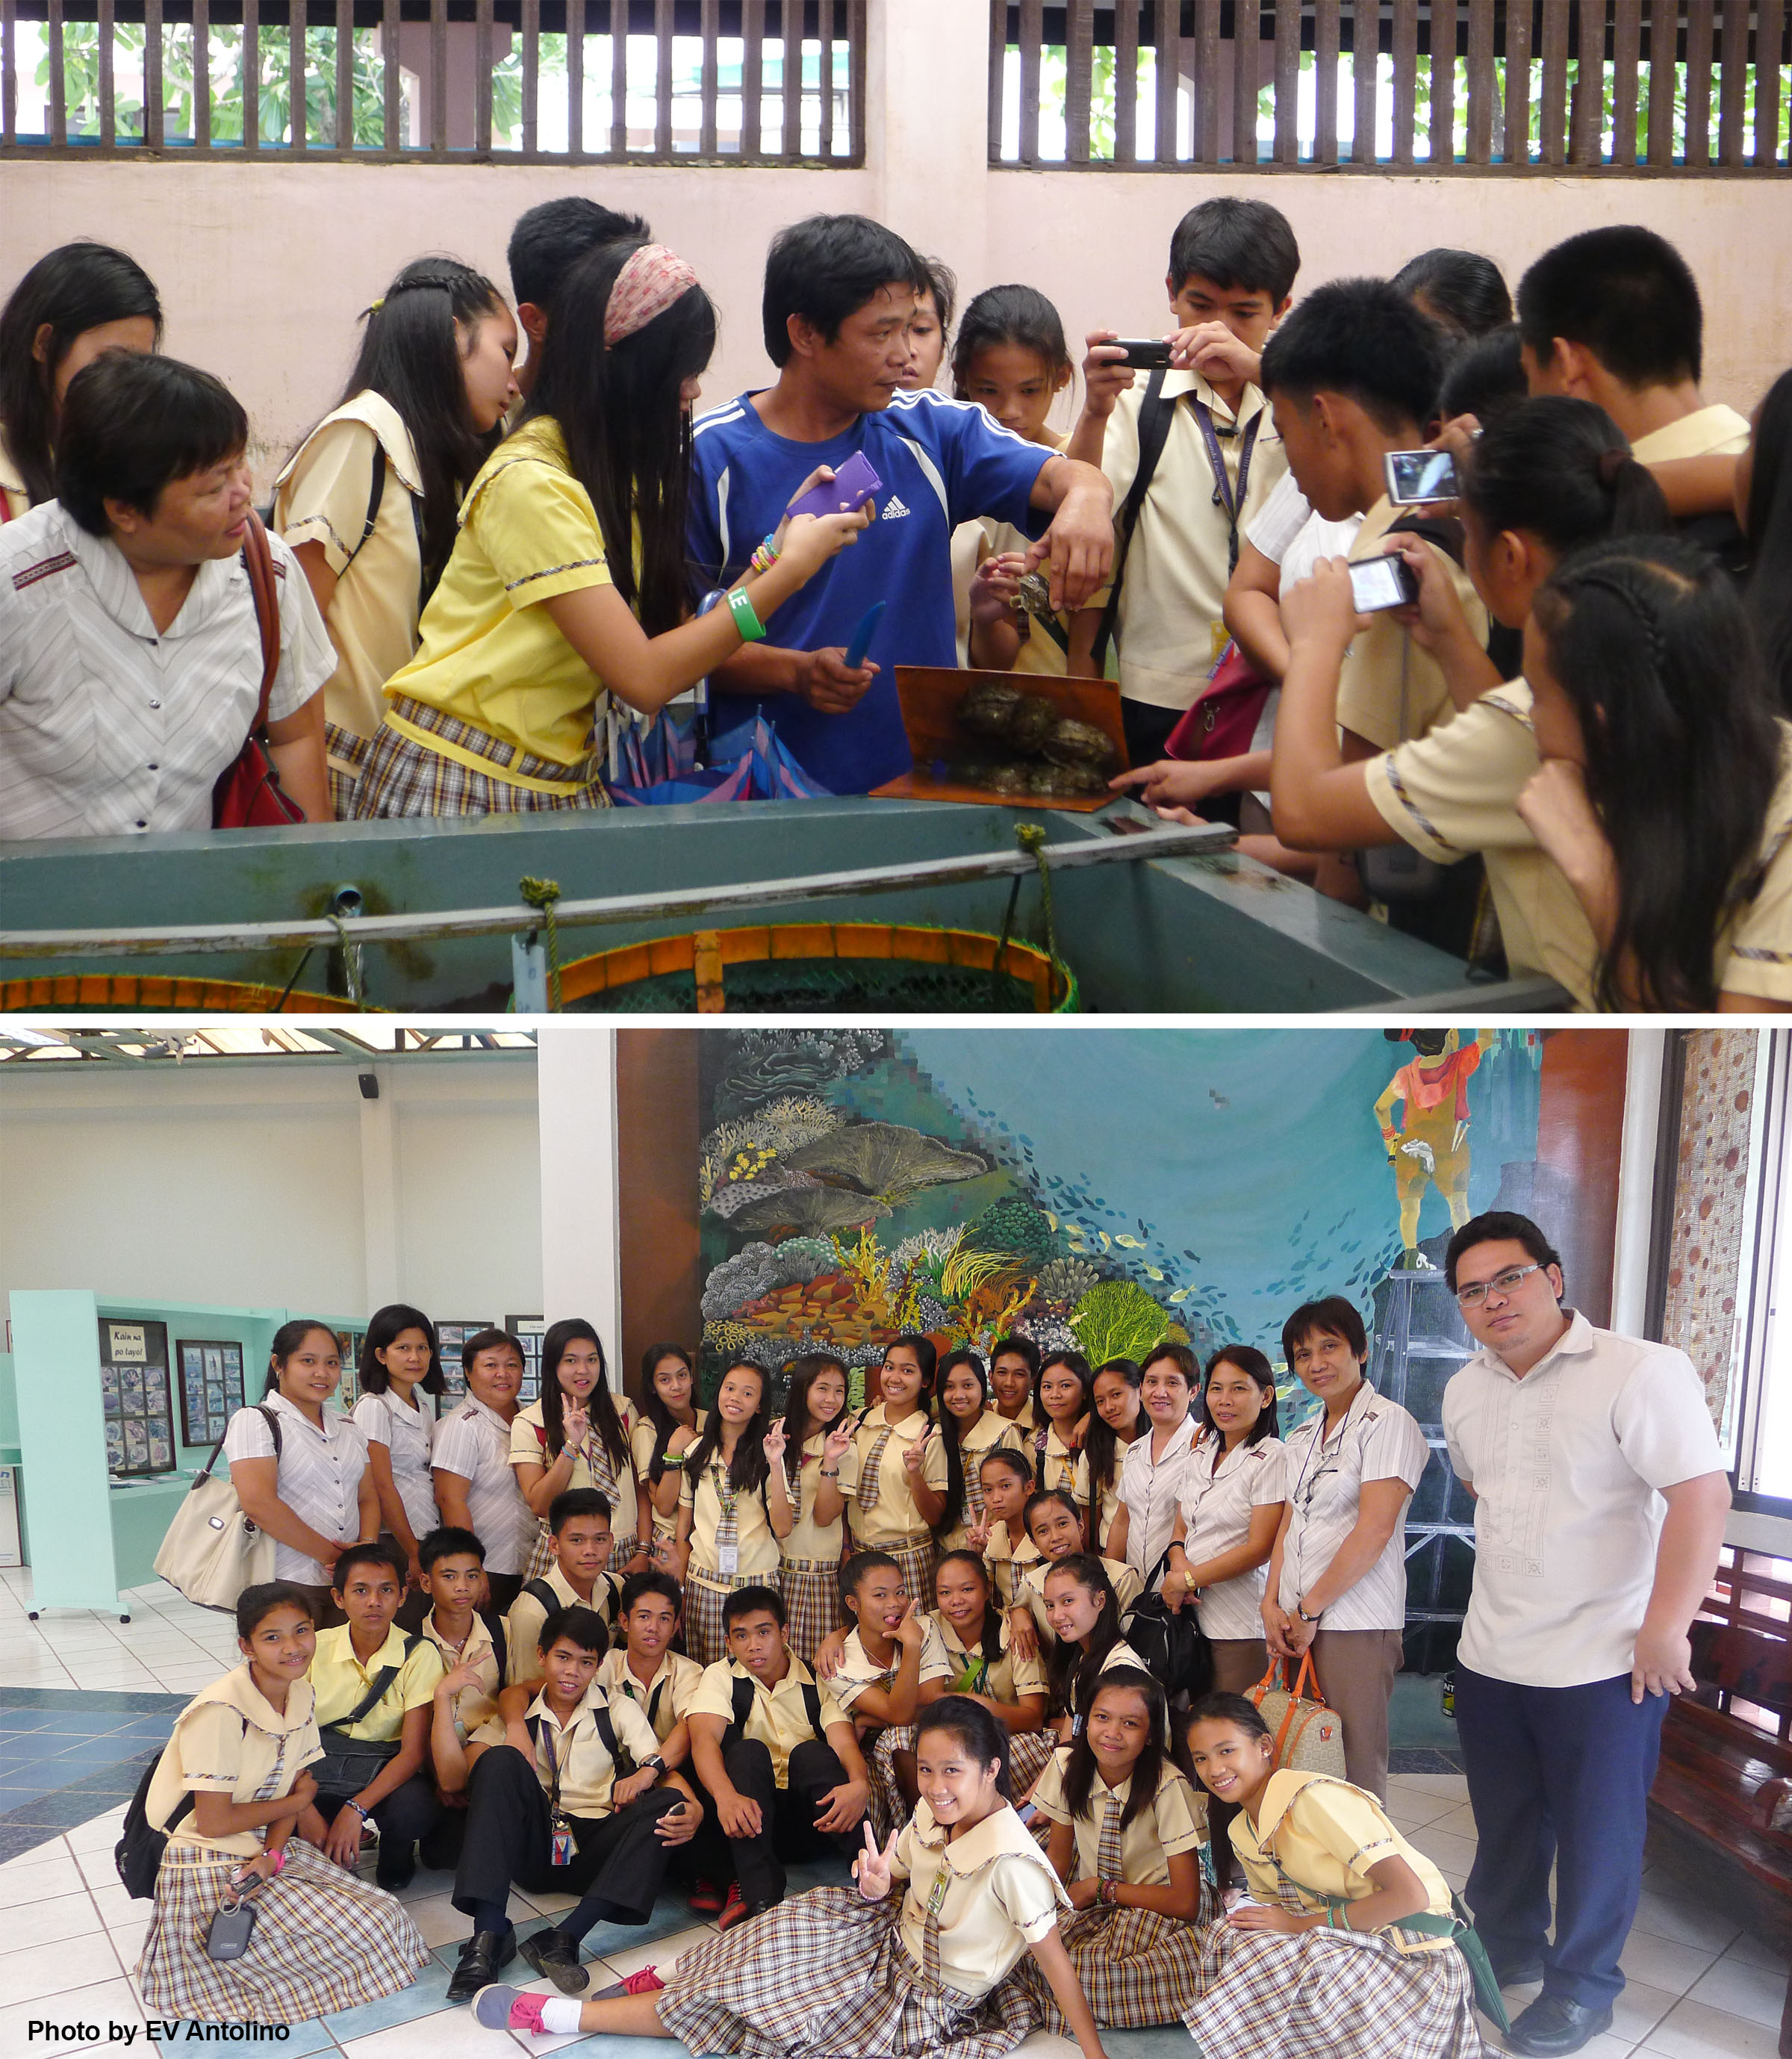 The teachers and students of Particion National High School enjoy their visit in the abalone hatchery and FishWorld